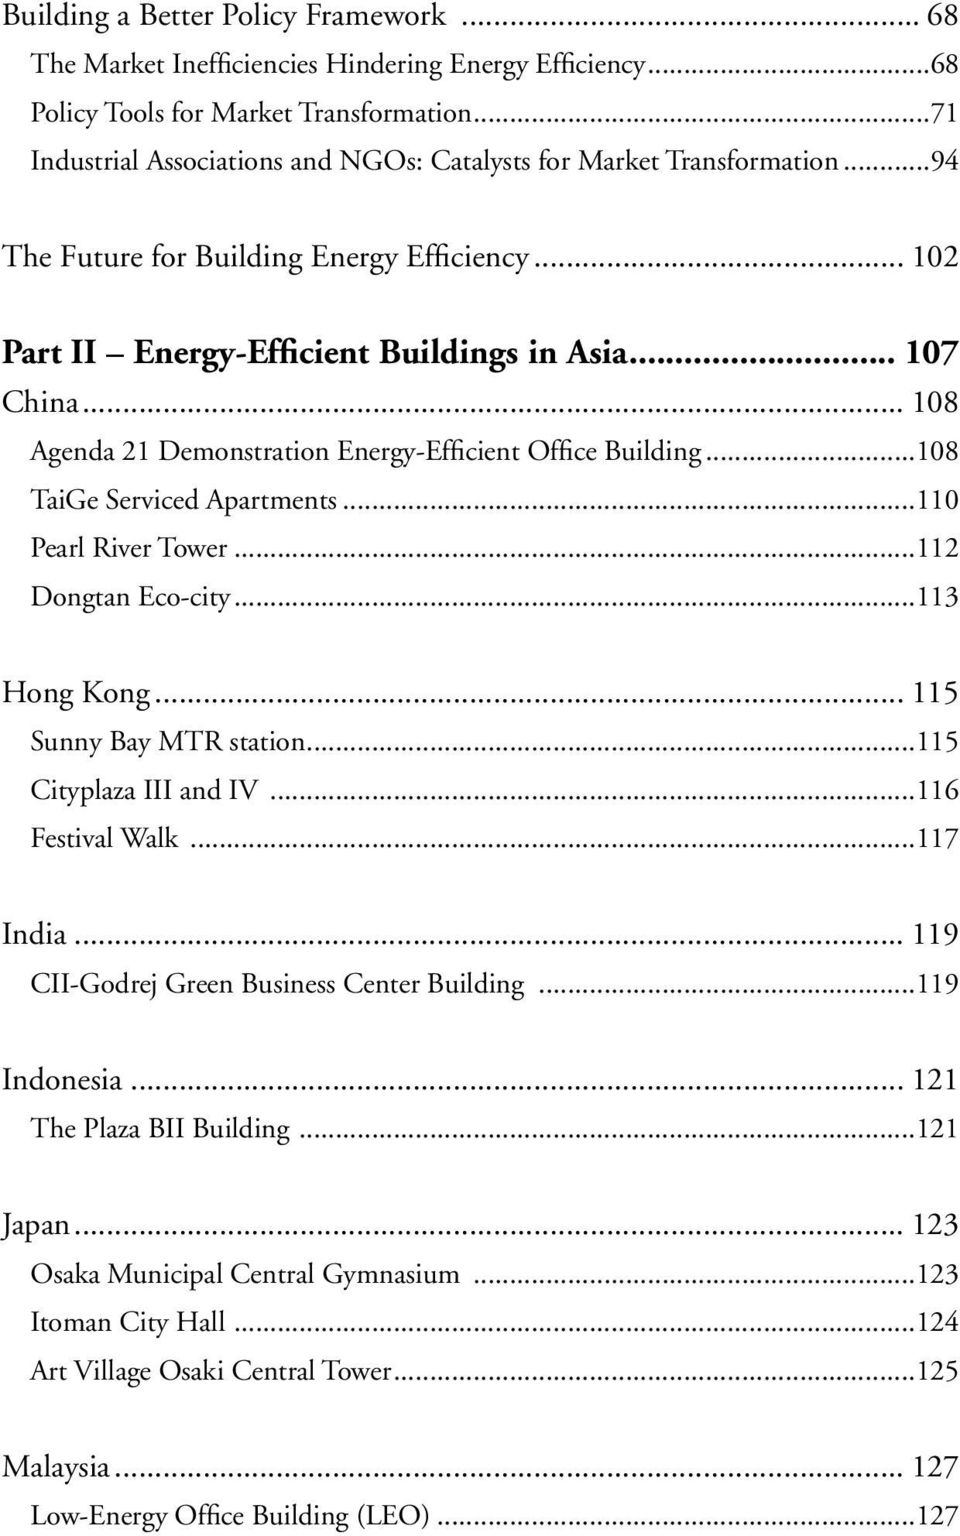 .. 108 Agenda 21 Demonstration Energy-Efficient Office Building...108 TaiGe Serviced Apartments...110 Pearl River Tower...112 Dongtan Eco-city...113 Hong Kong... 115 Sunny Bay MTR station.